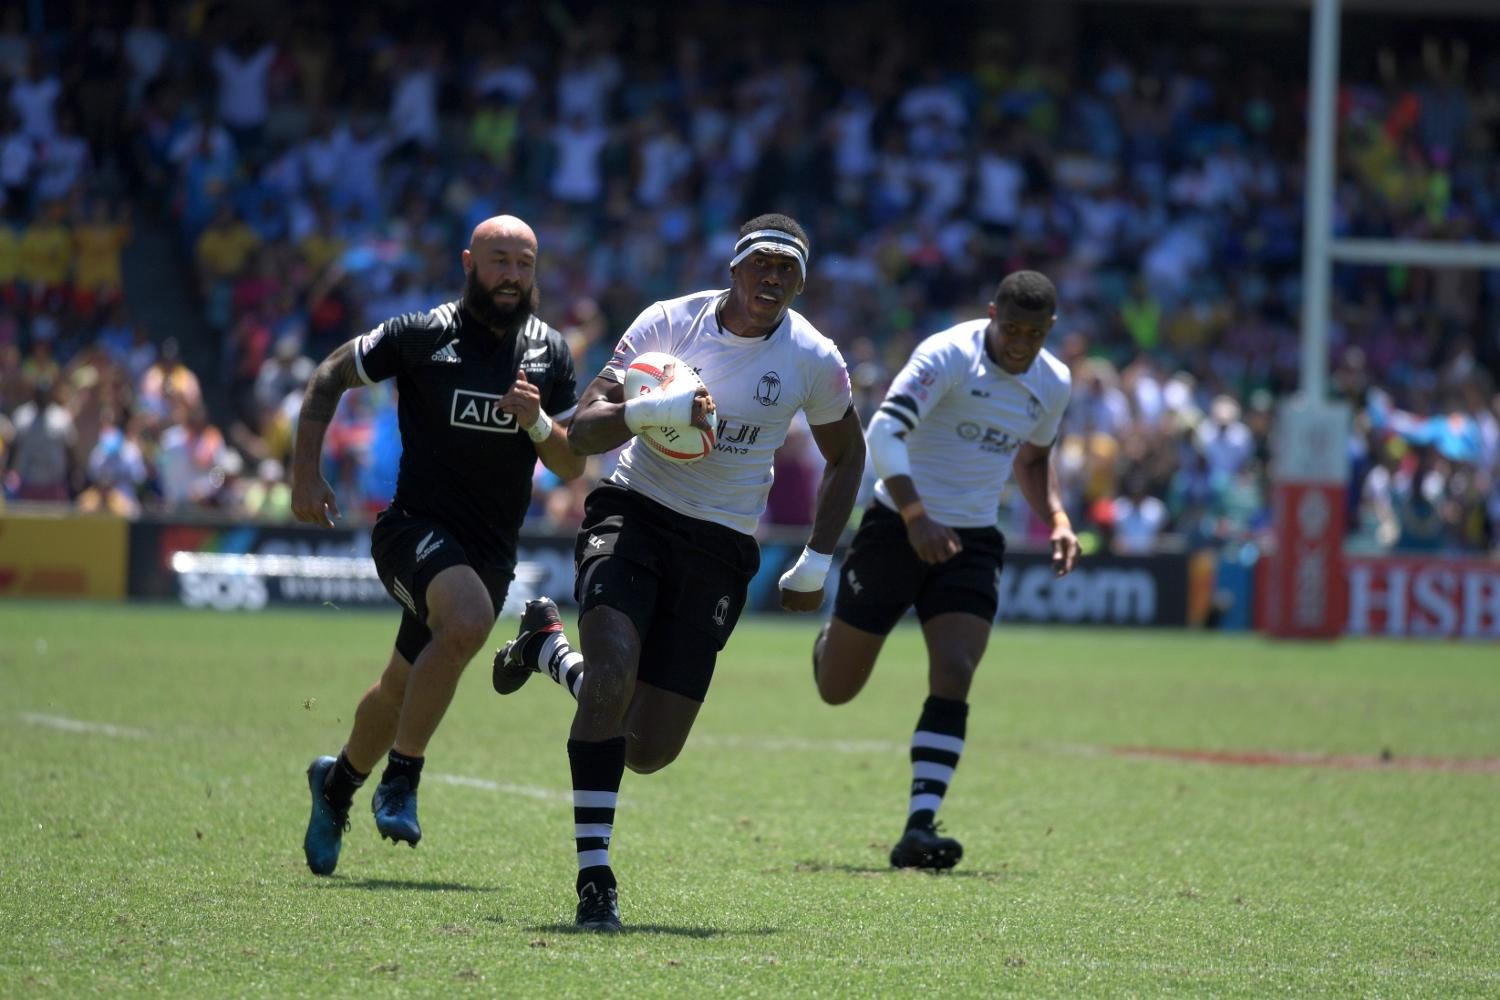 HSBC World Rugby Sevens Series 2016-17 - Sydney Day 2